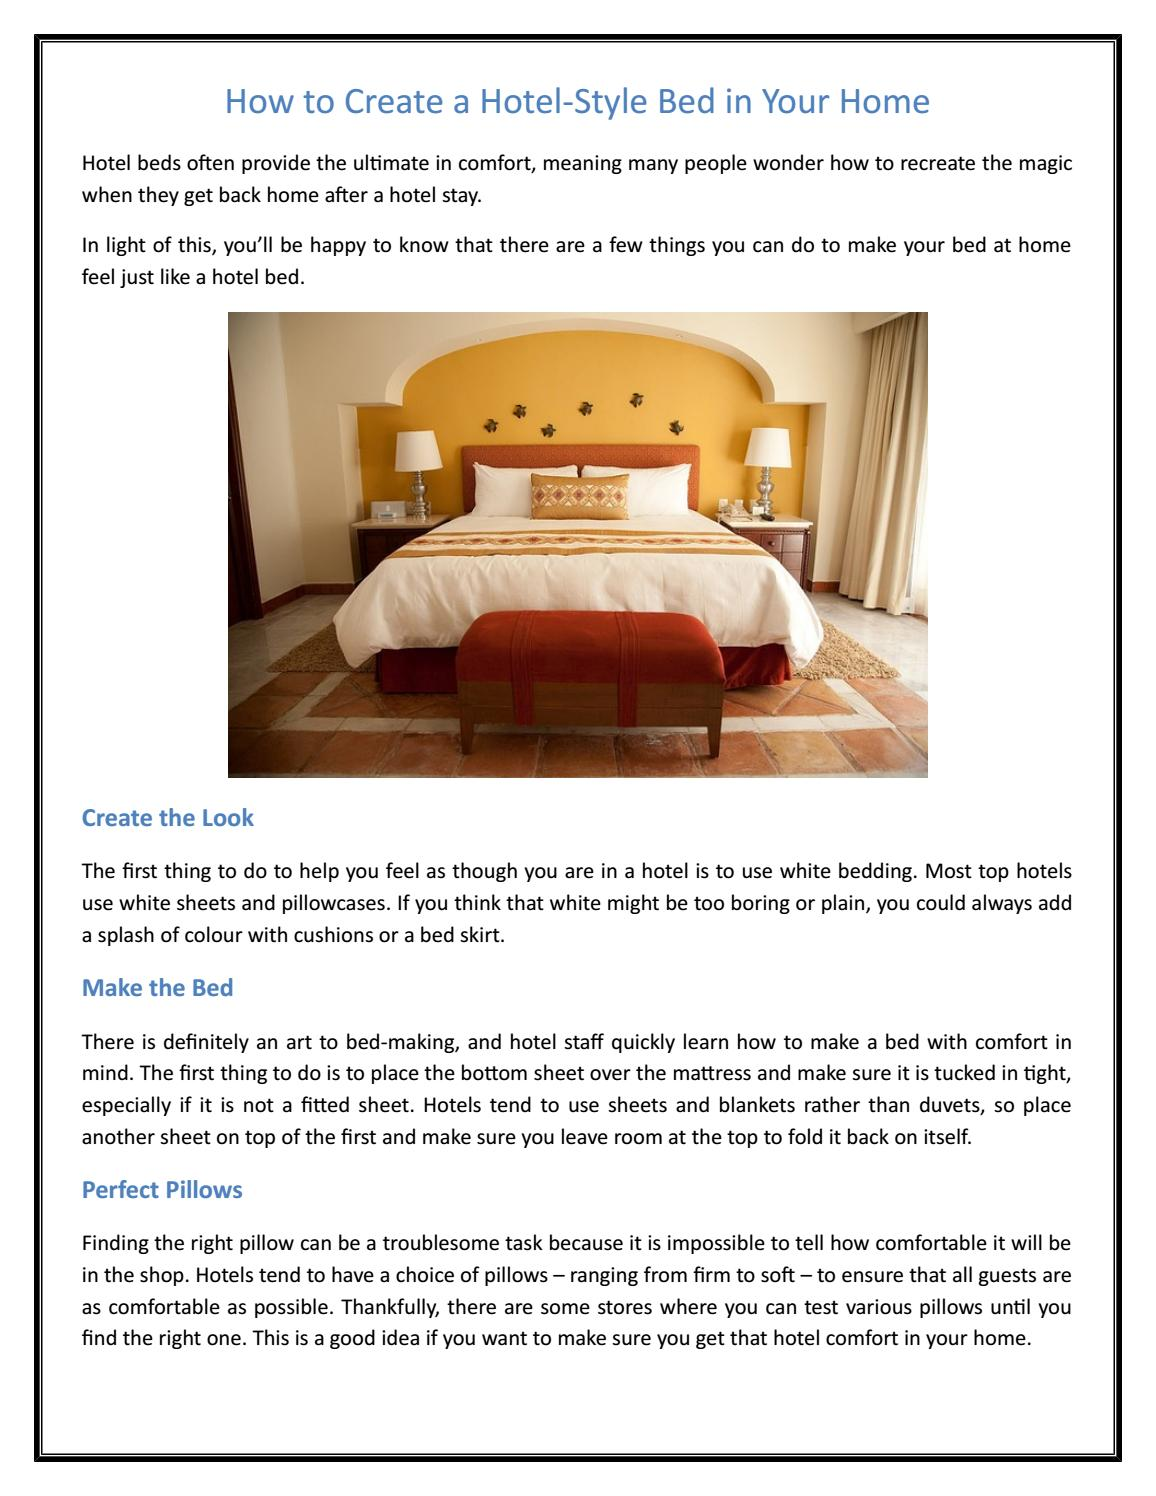 How To Create A Hotel Style Bed In Your Home By Colinarmstrong Issuu